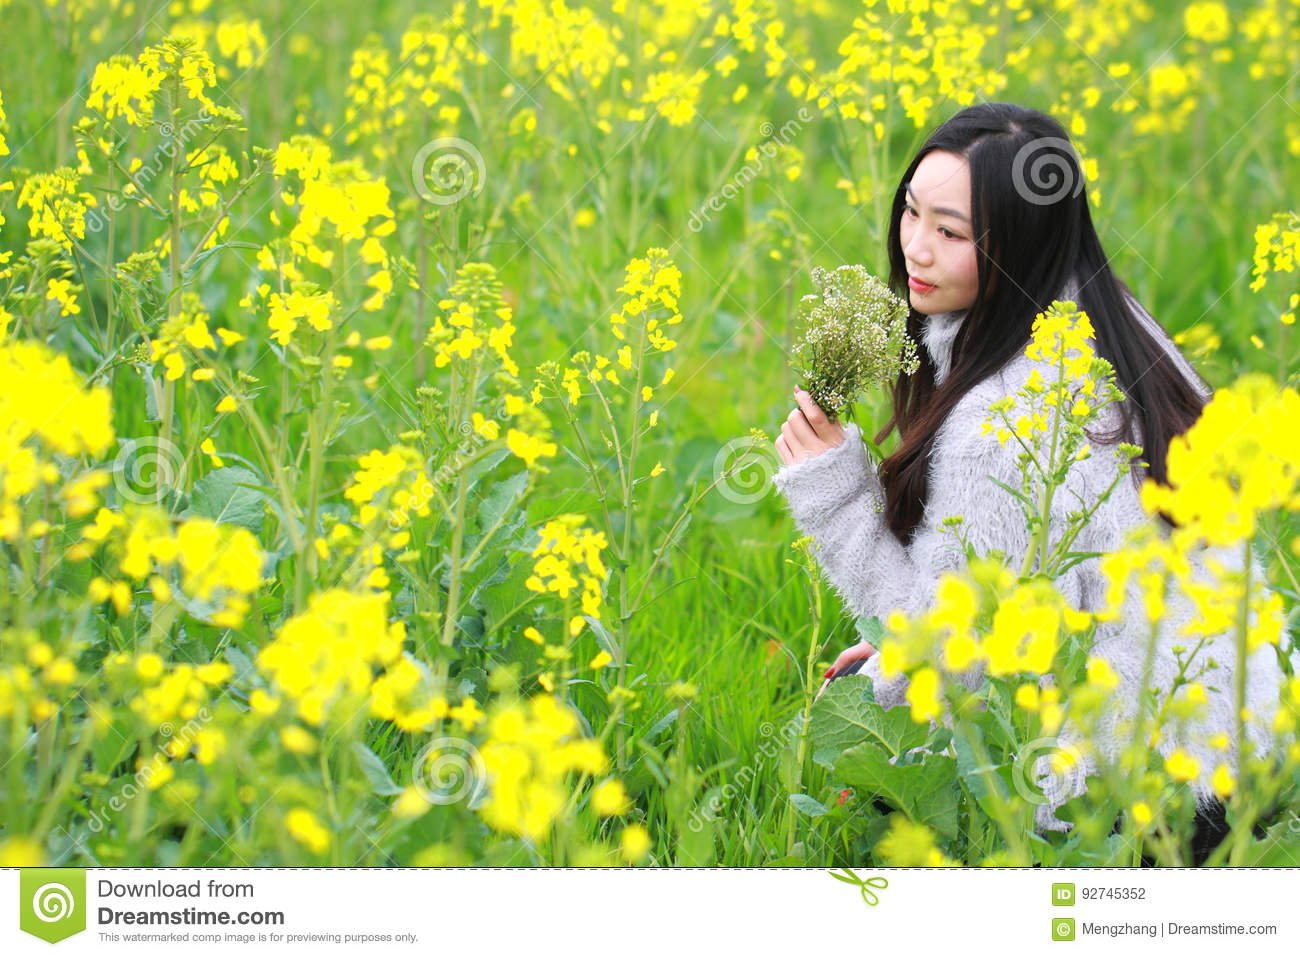 At Beautiful Early Spring A Young Woman Stand In The Middle Of